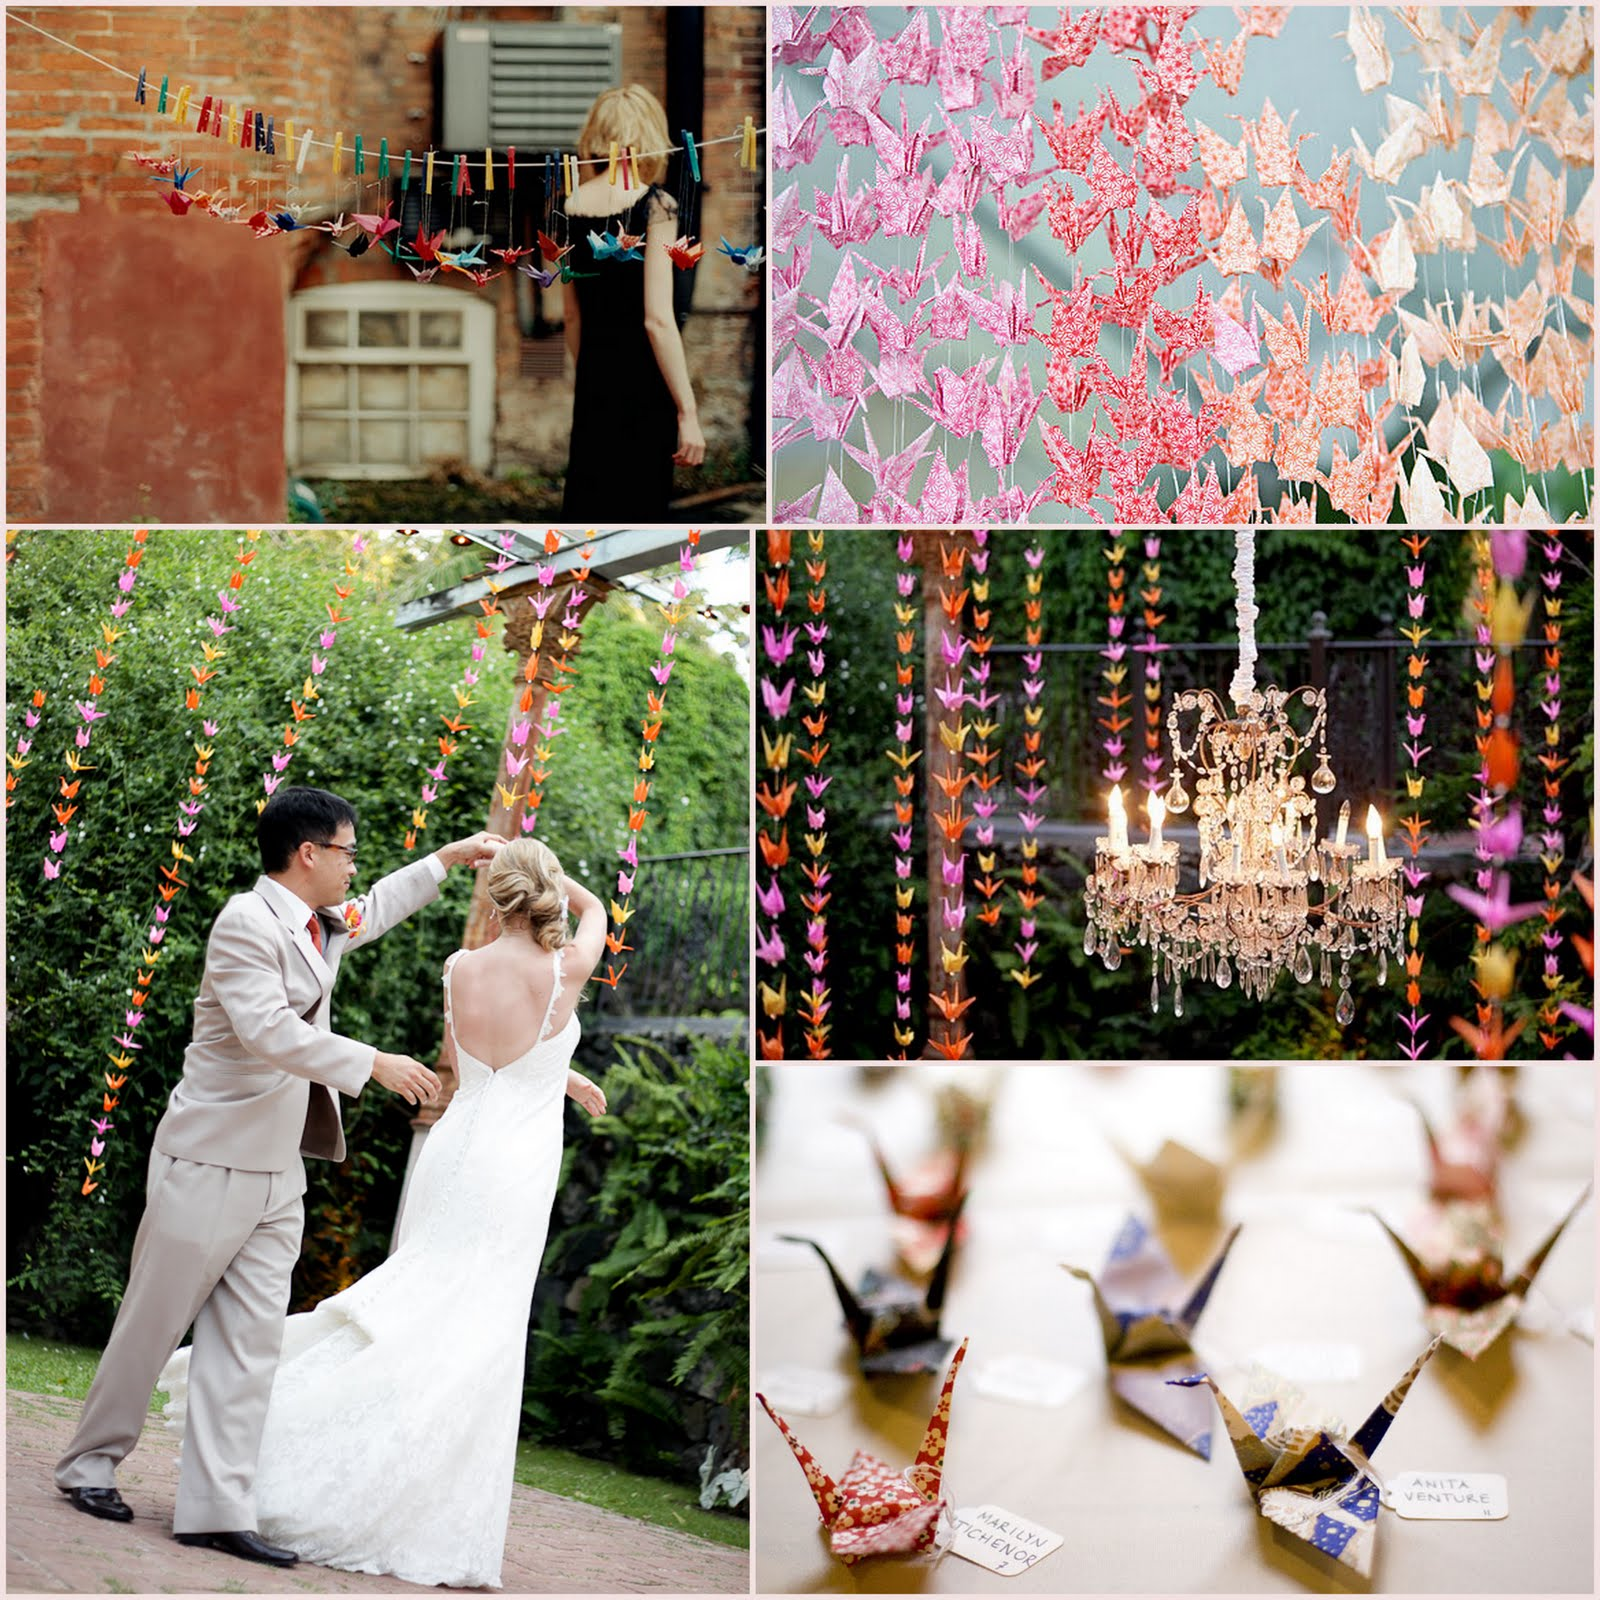 Omiyage blogs 1000 paper crane weddings for 1000 paper cranes wedding decoration